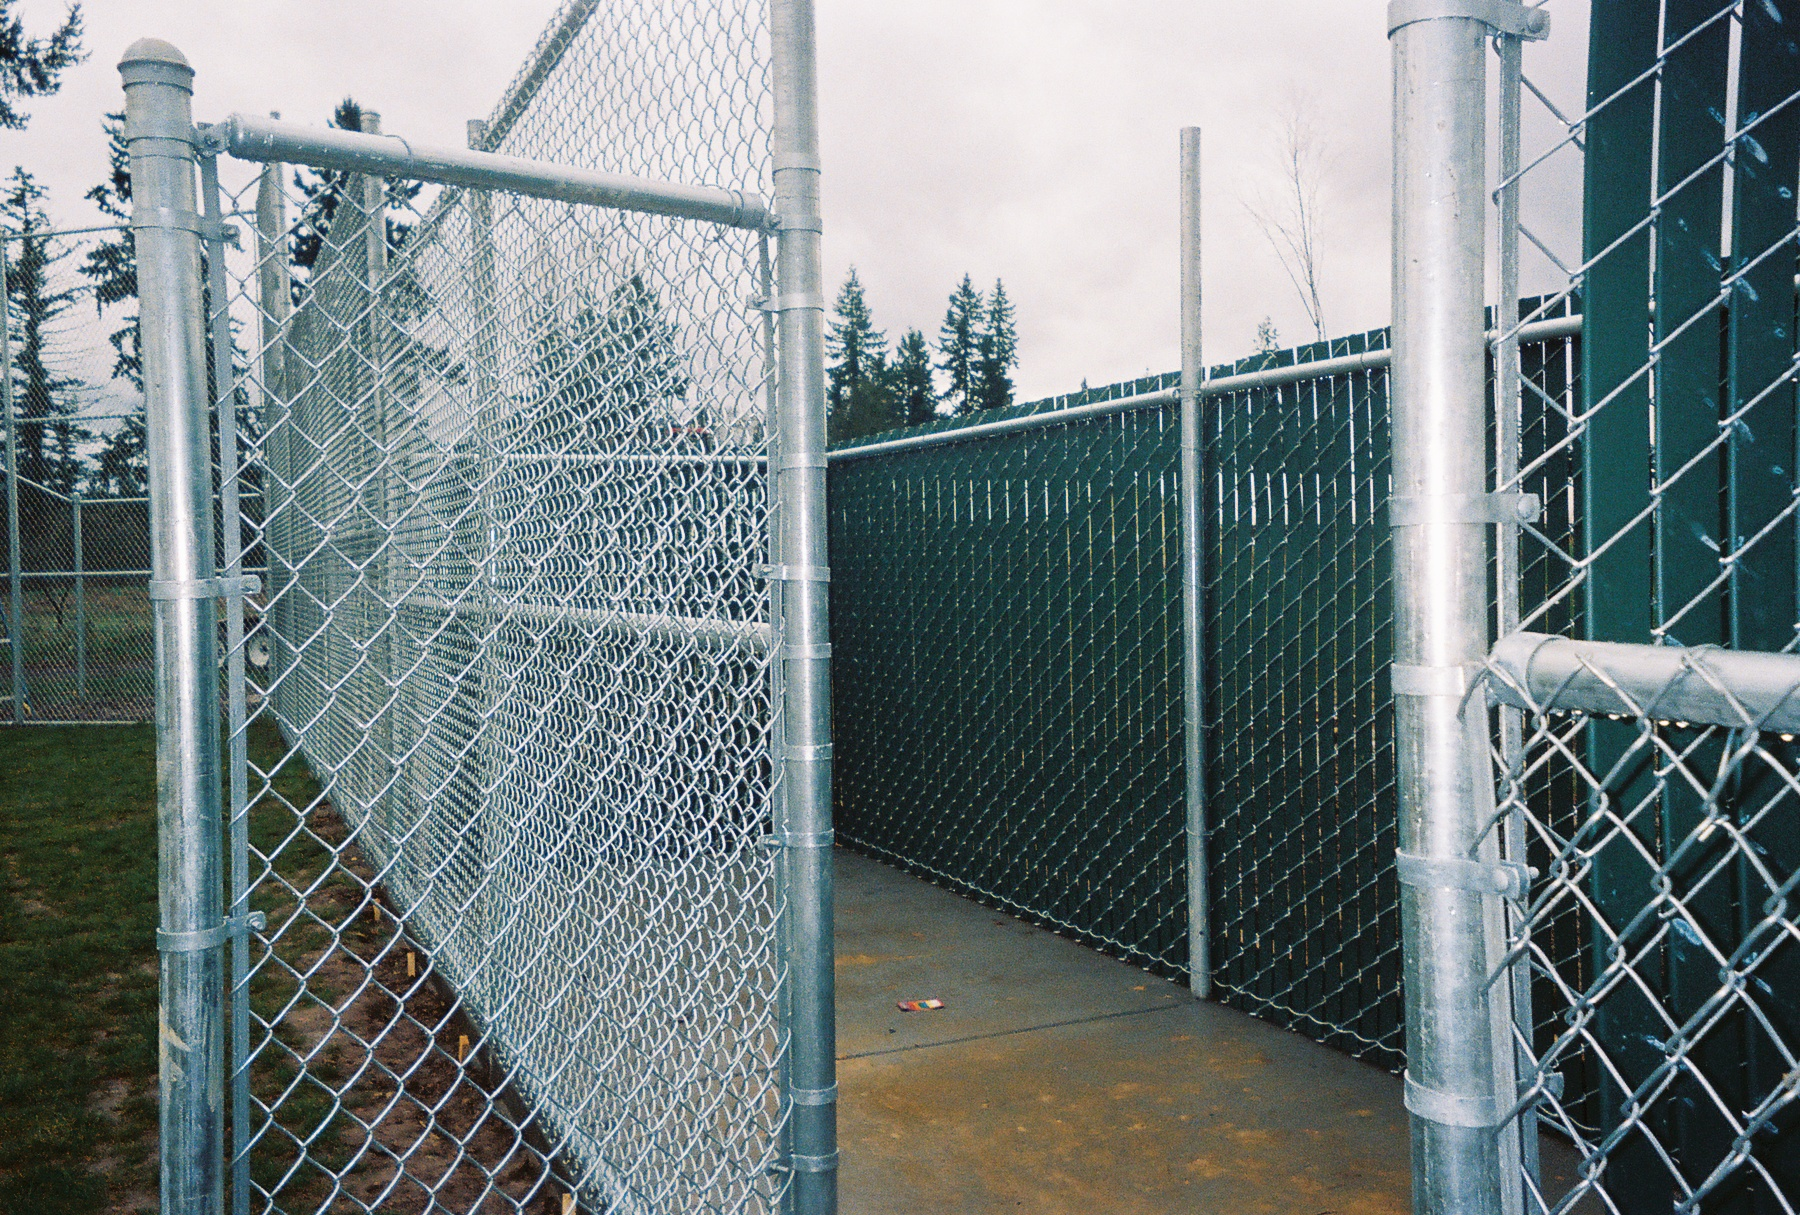 Green Pre-slatted Chain link fencing. Contact Vancouver Washington's Best Fence Builders. The Fenceman Fence Company installs wood, vinyl, chain link and ornamental iron fences. We also offer materials for the do it yourselfer